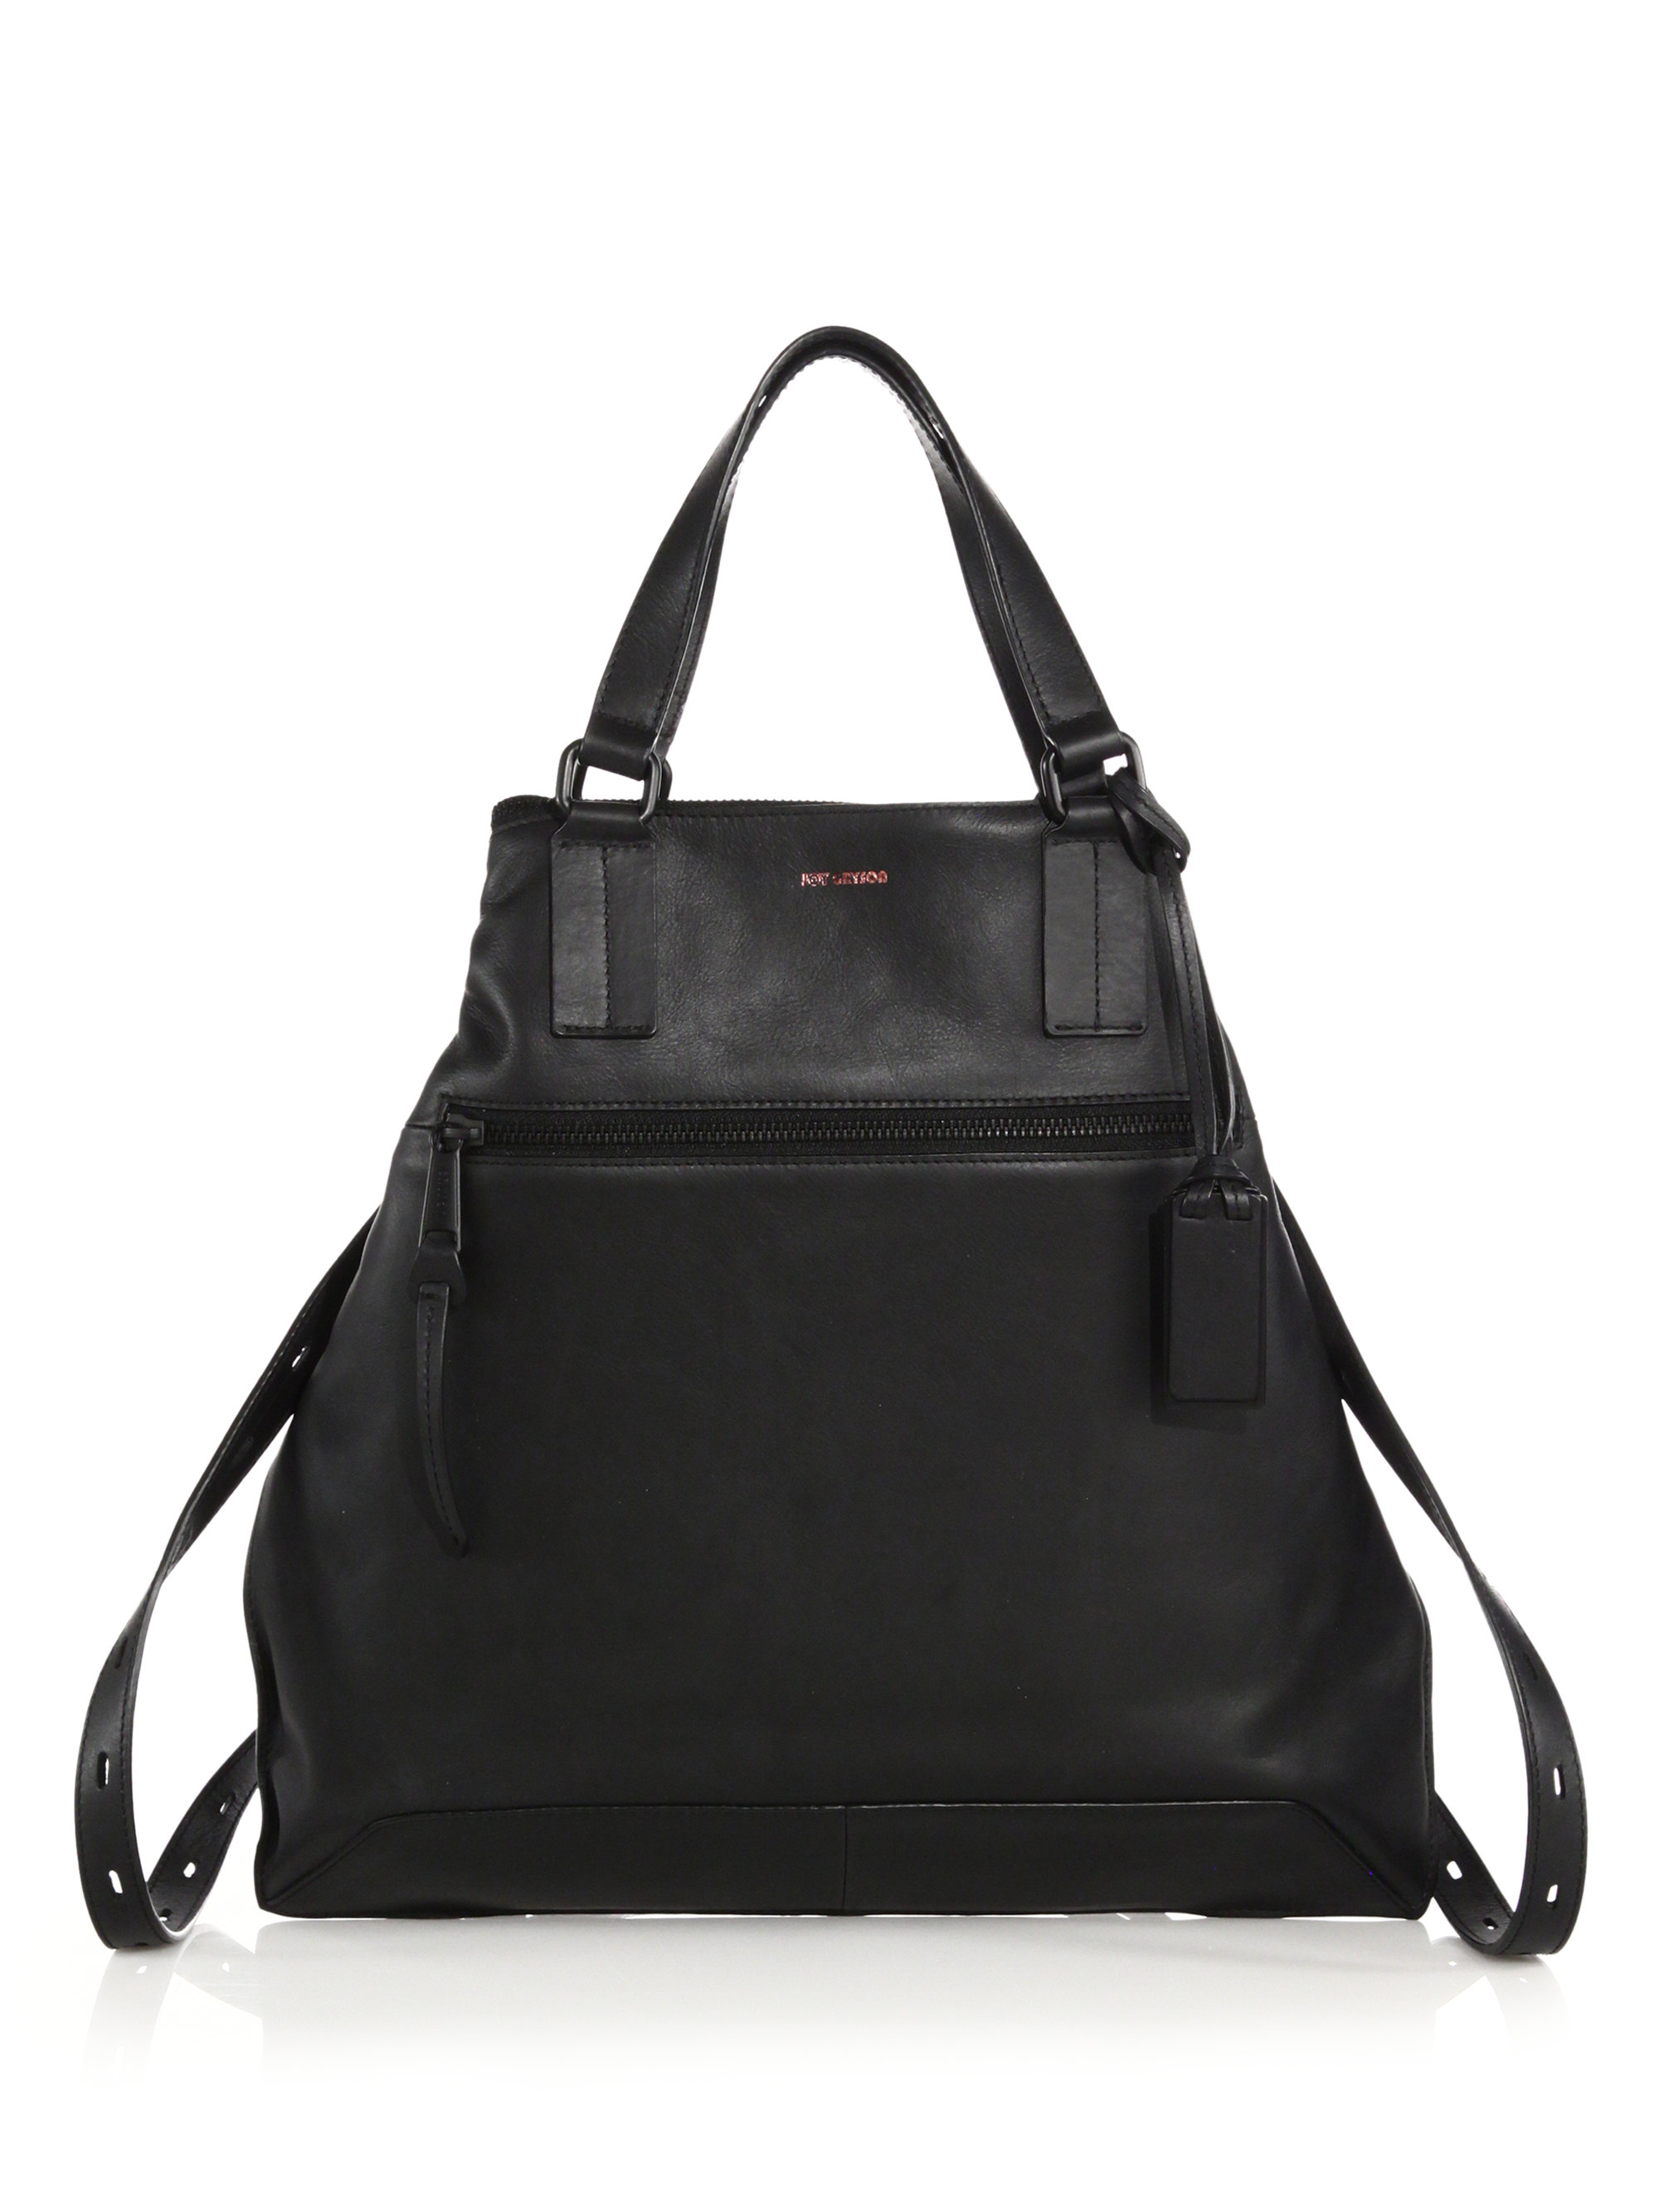 Joy gryson Ryan Convertible Leather Backpack/Tote in Black | Lyst